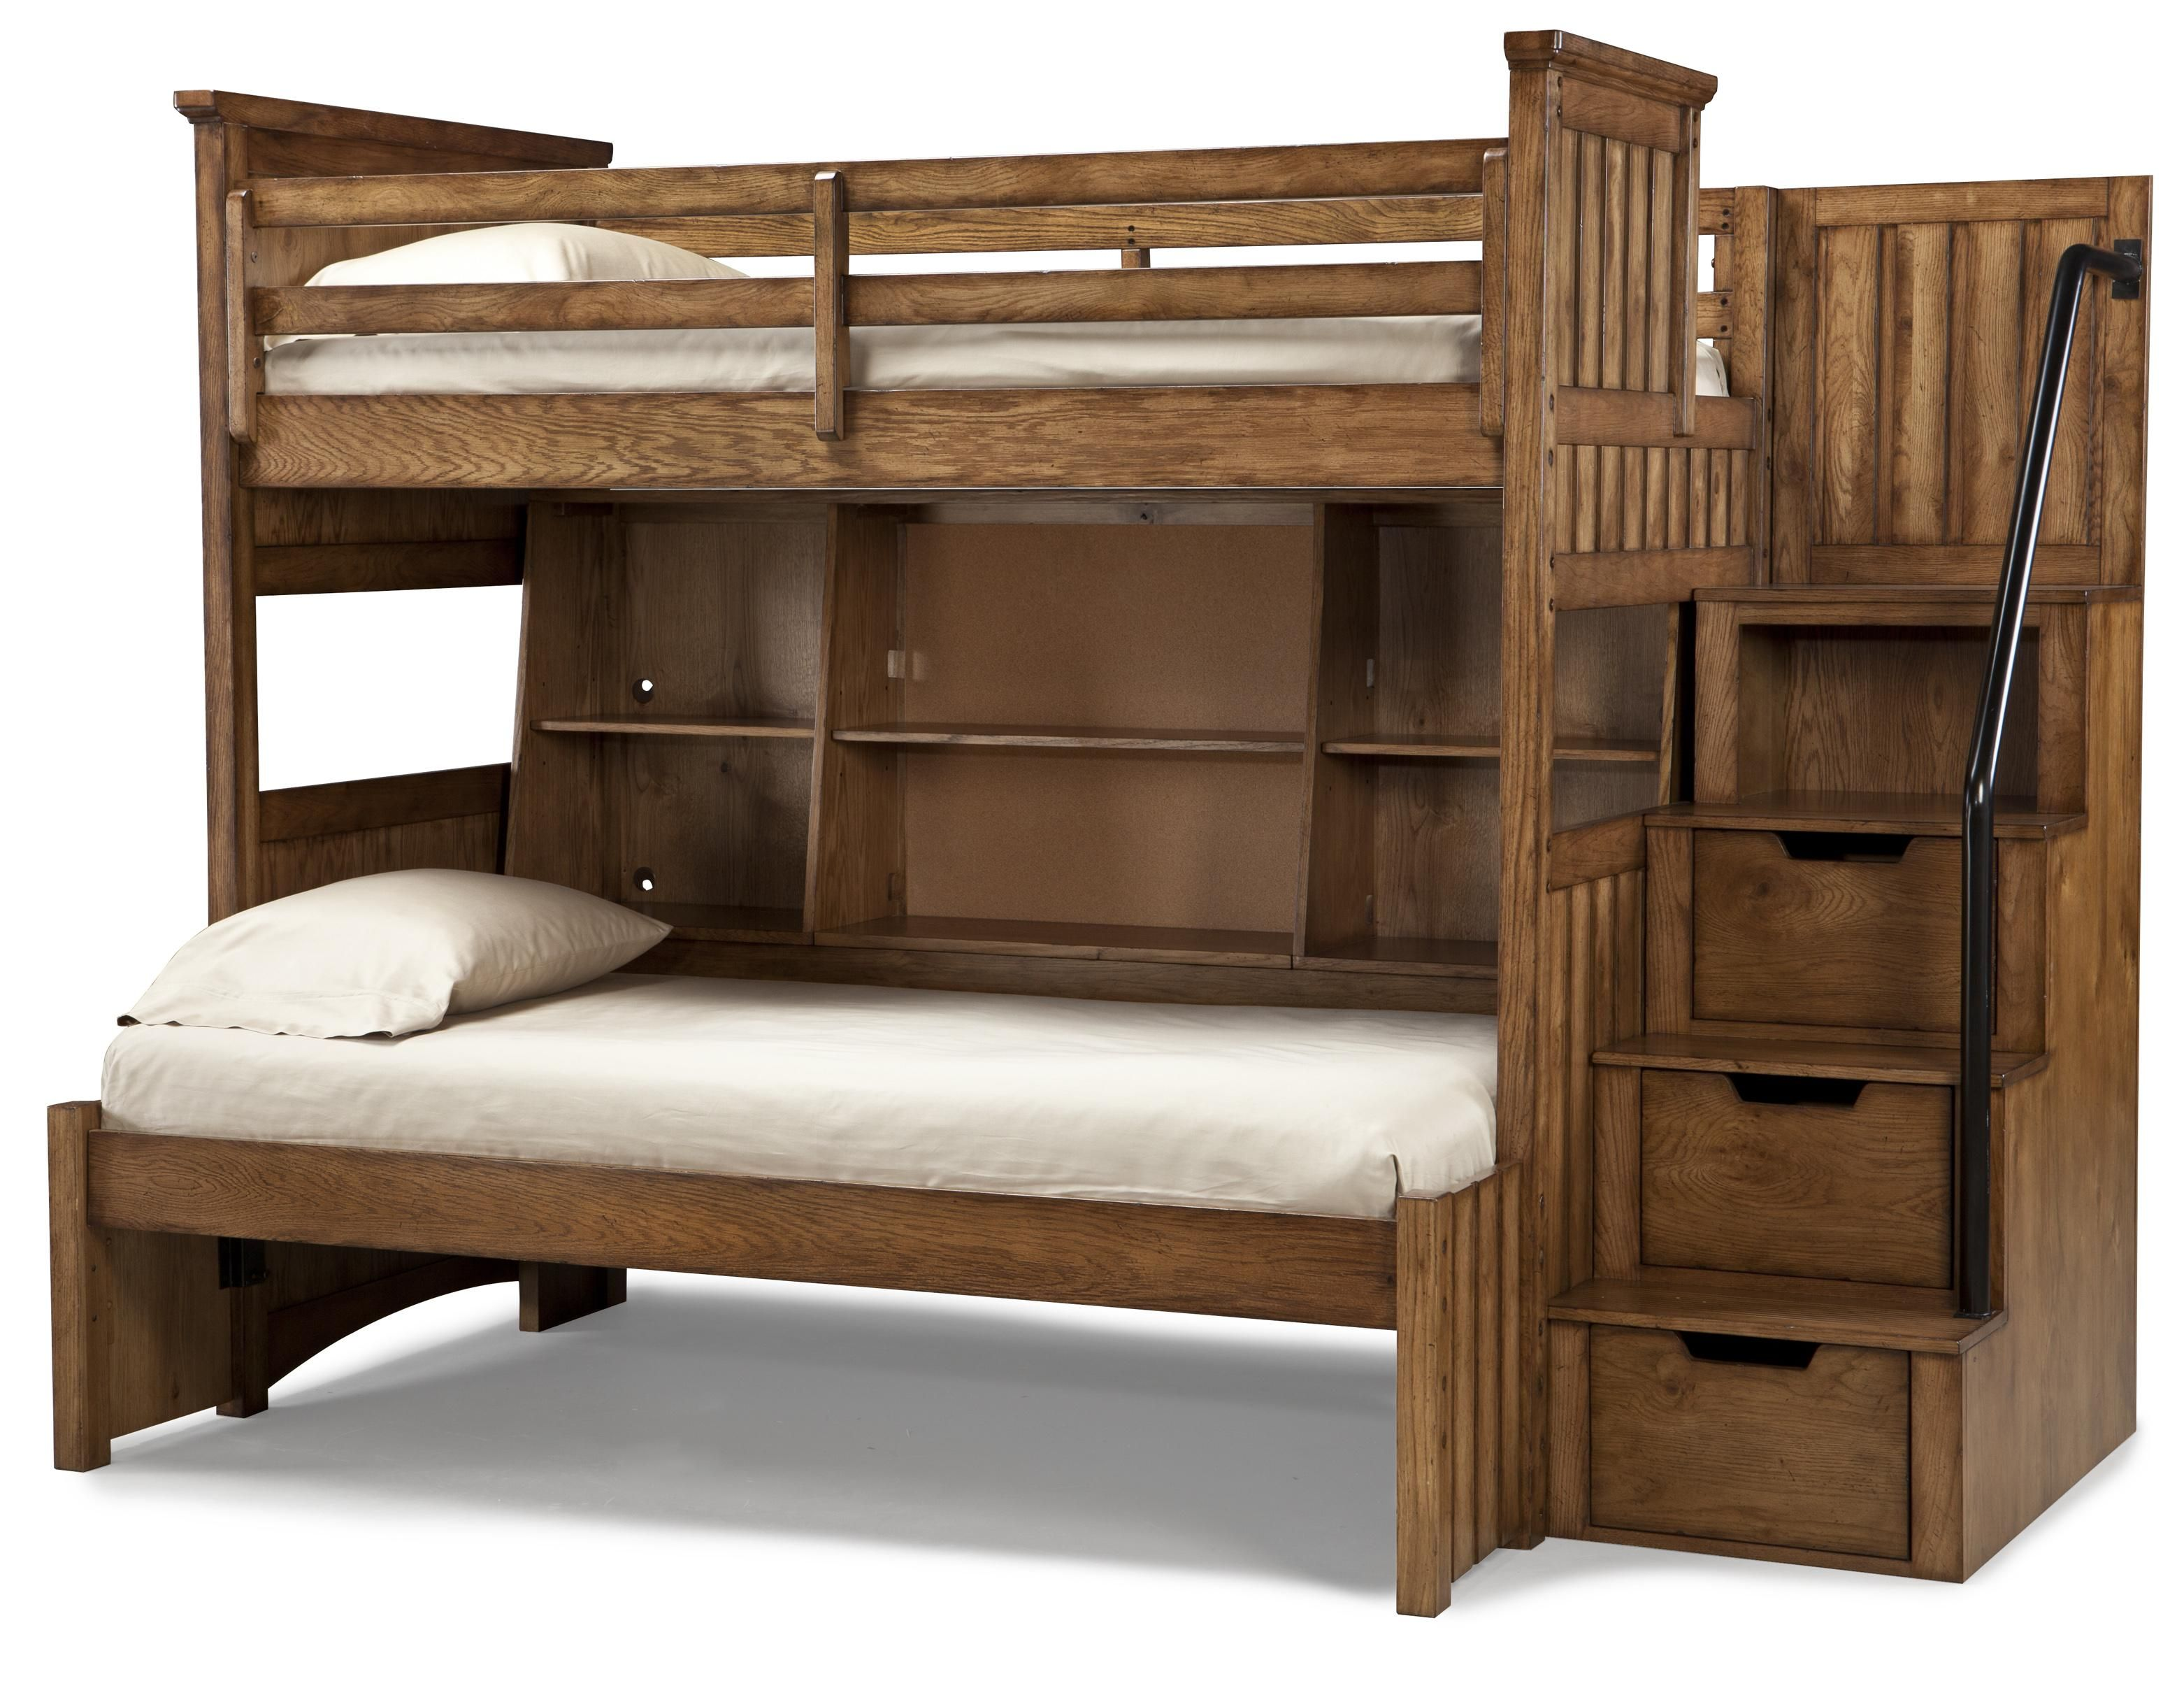 over built bunk beautiful dresser twin bed size classic of in and drawers room wood storage kids finish cheap bedroom design strong beds full for best with ideas